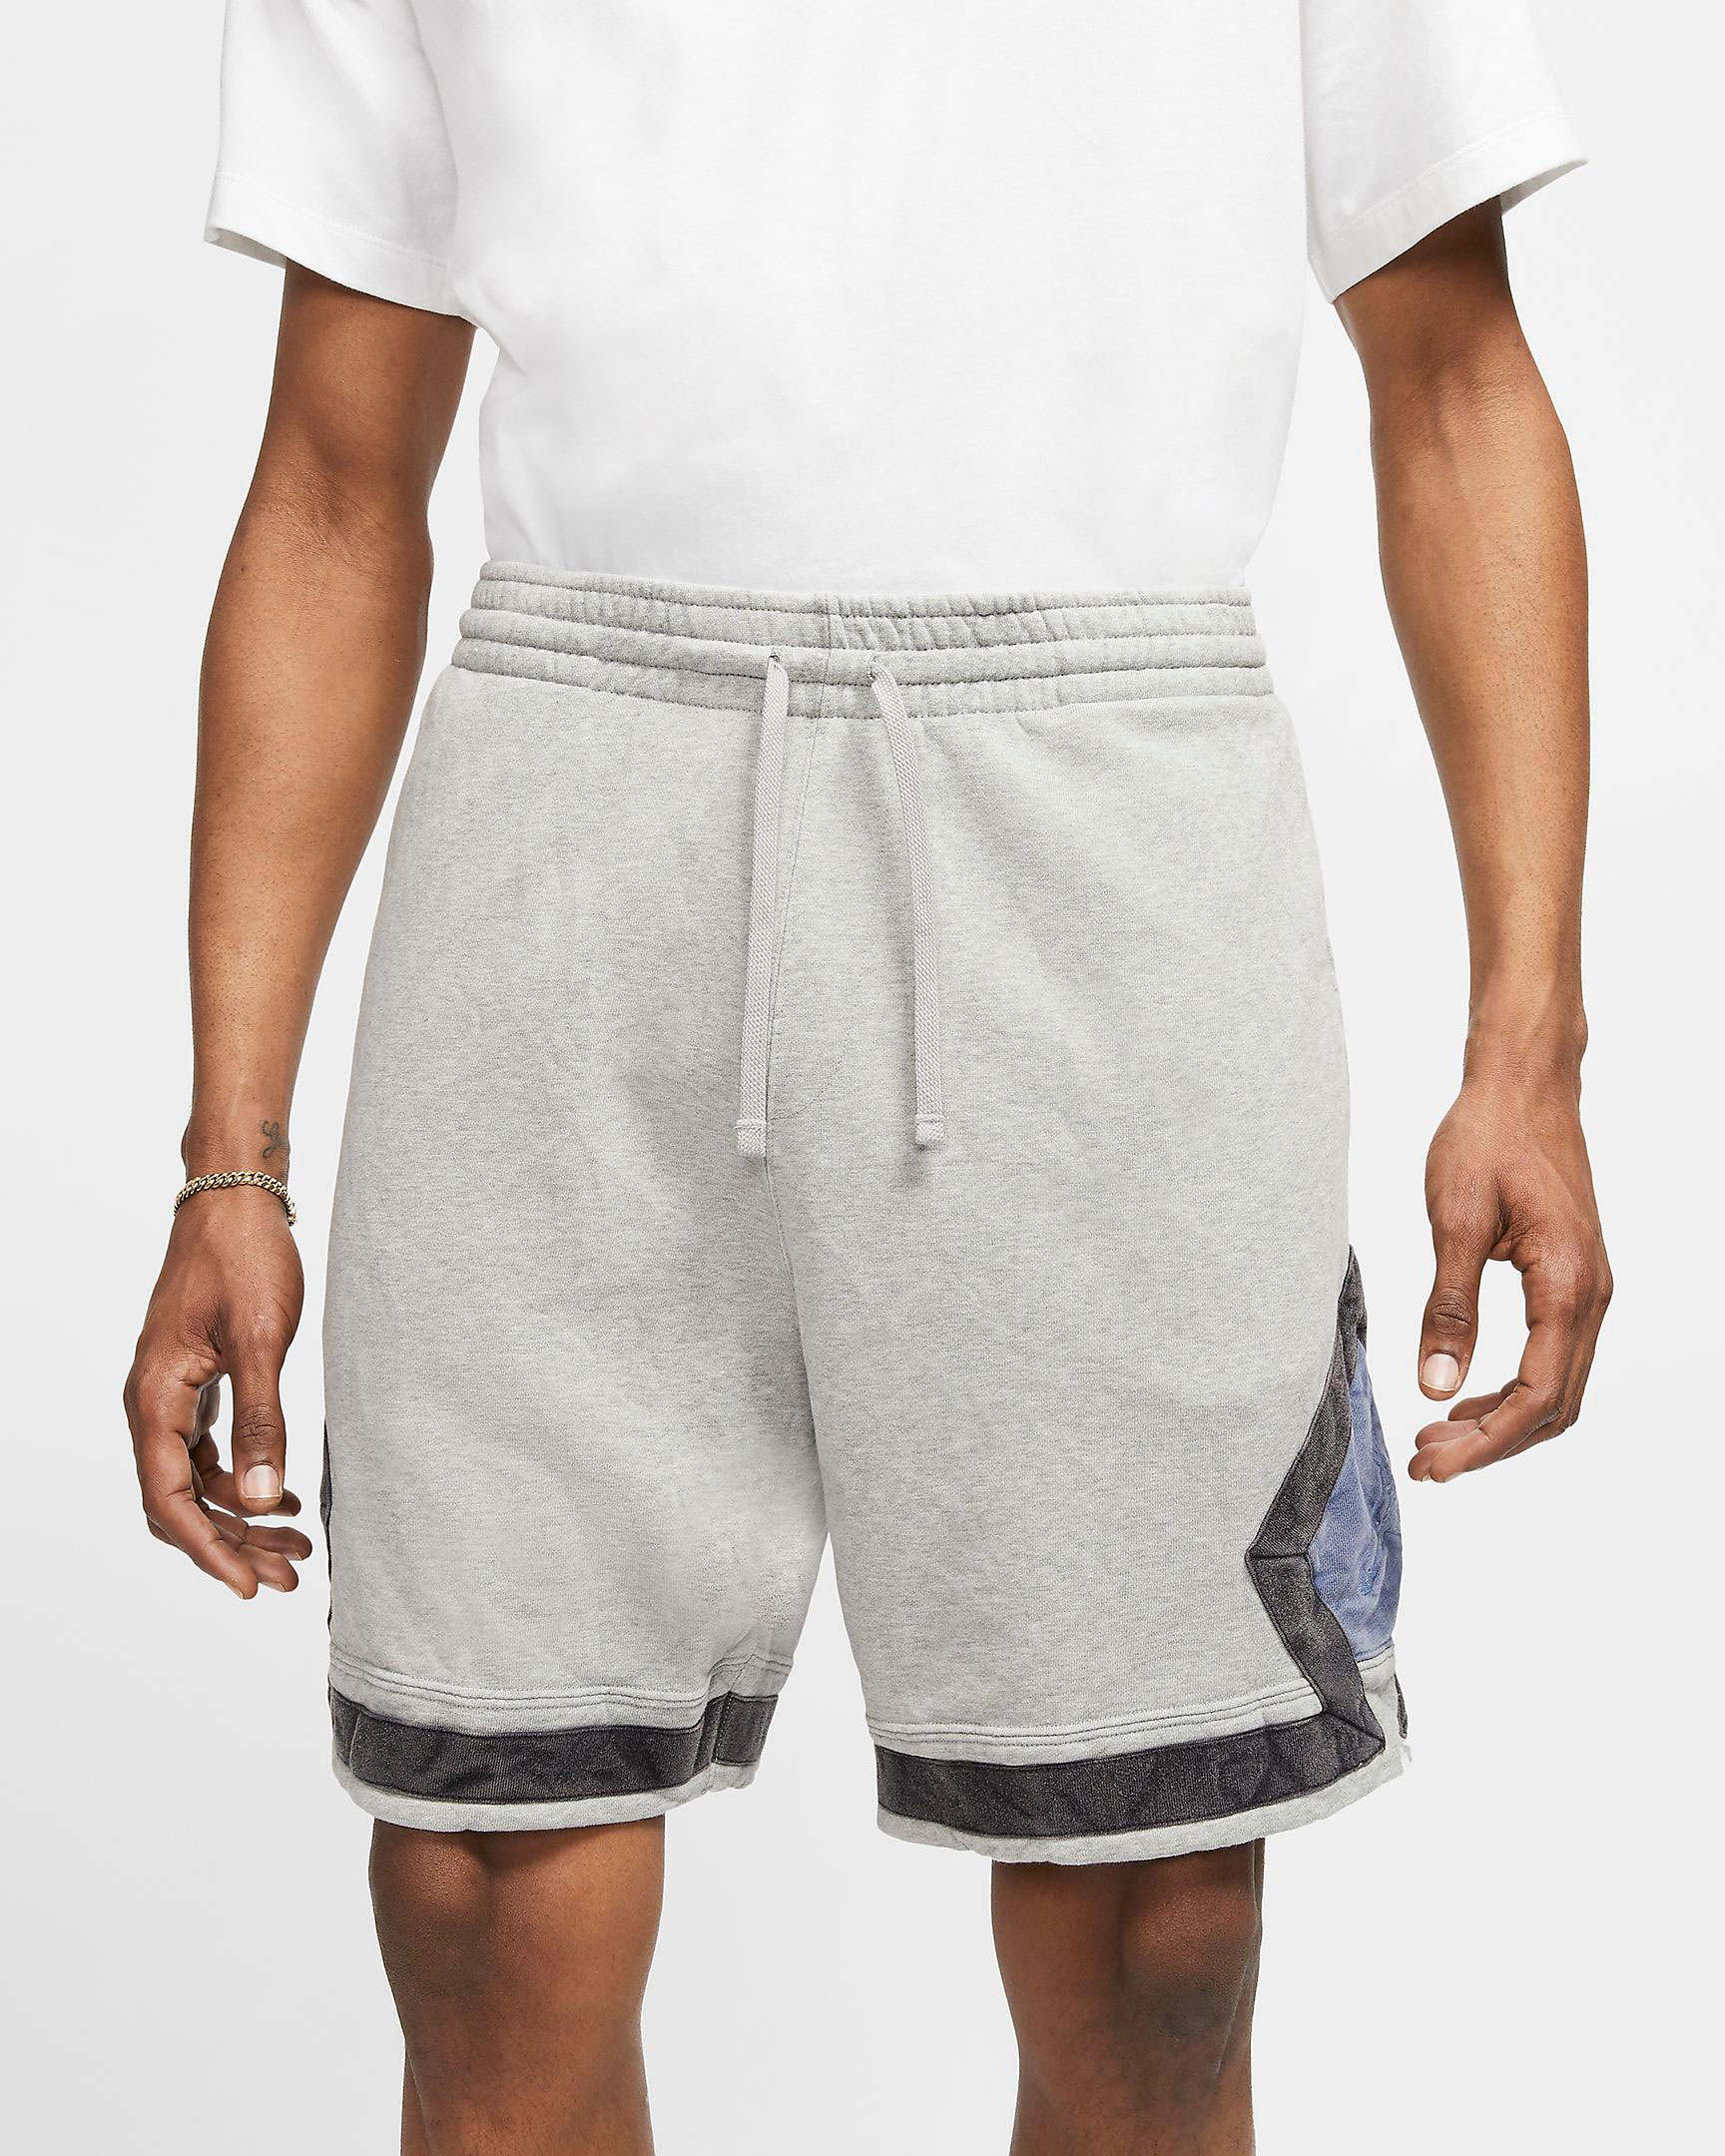 flint-air-jordan-13-shorts-grey-2